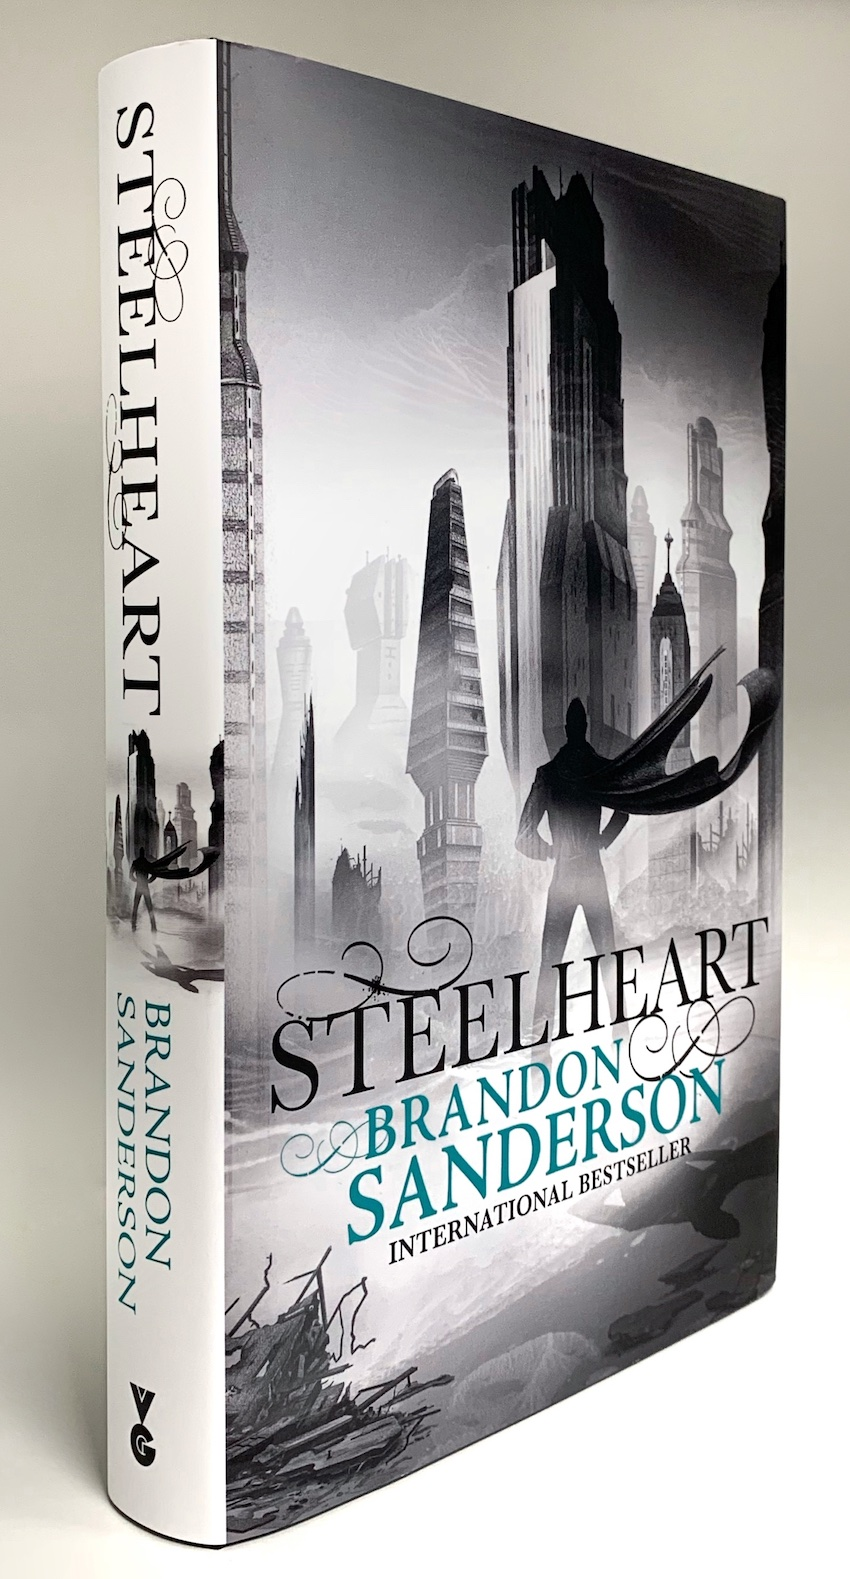 Image for STEELHEART - Signed, Dated, Limited First Edition